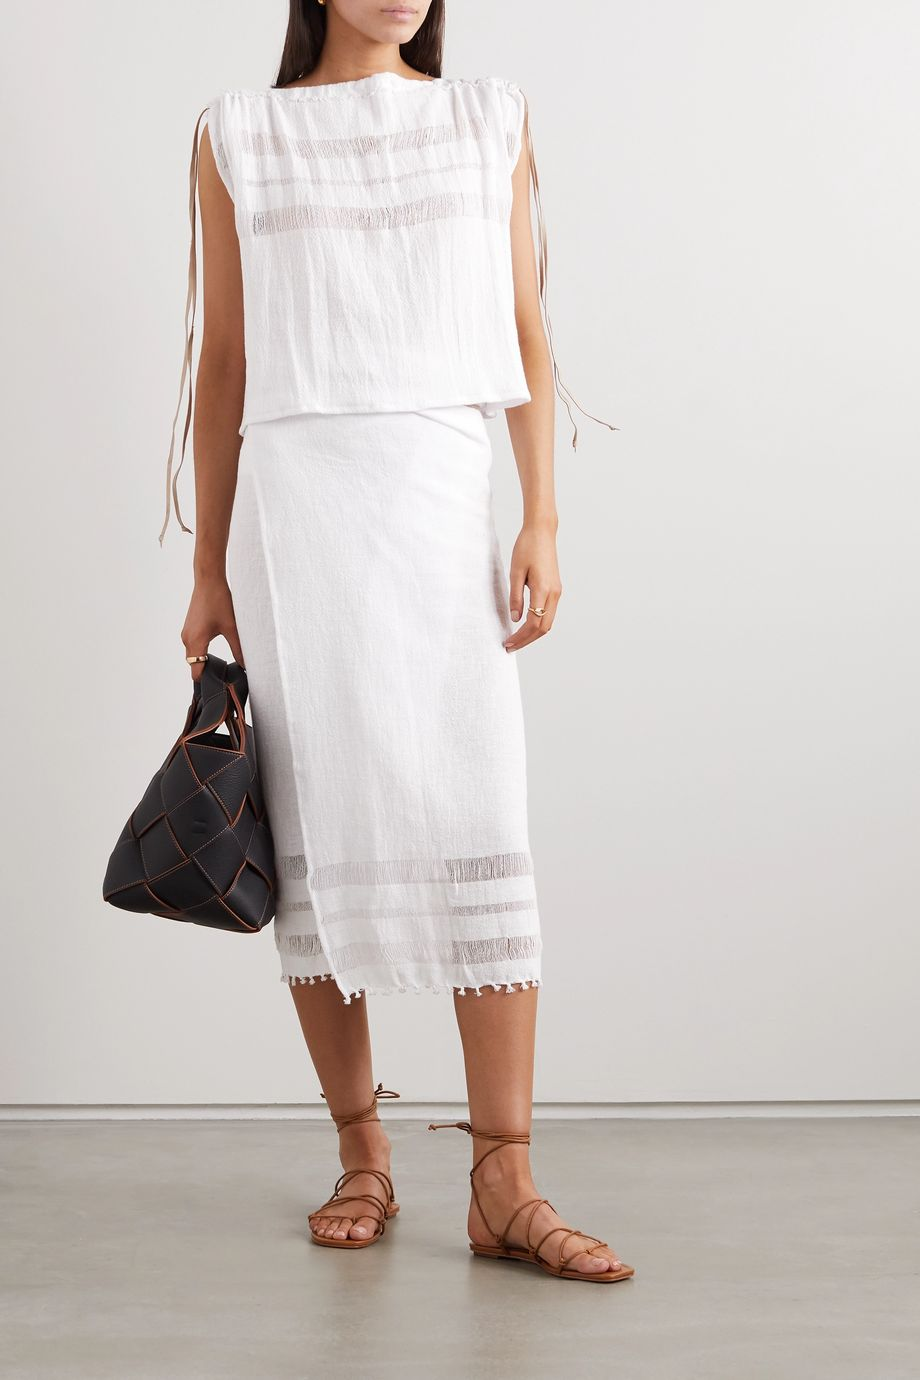 Caravana + NET SUSTAIN suede-trimmed cotton-gauze pareo